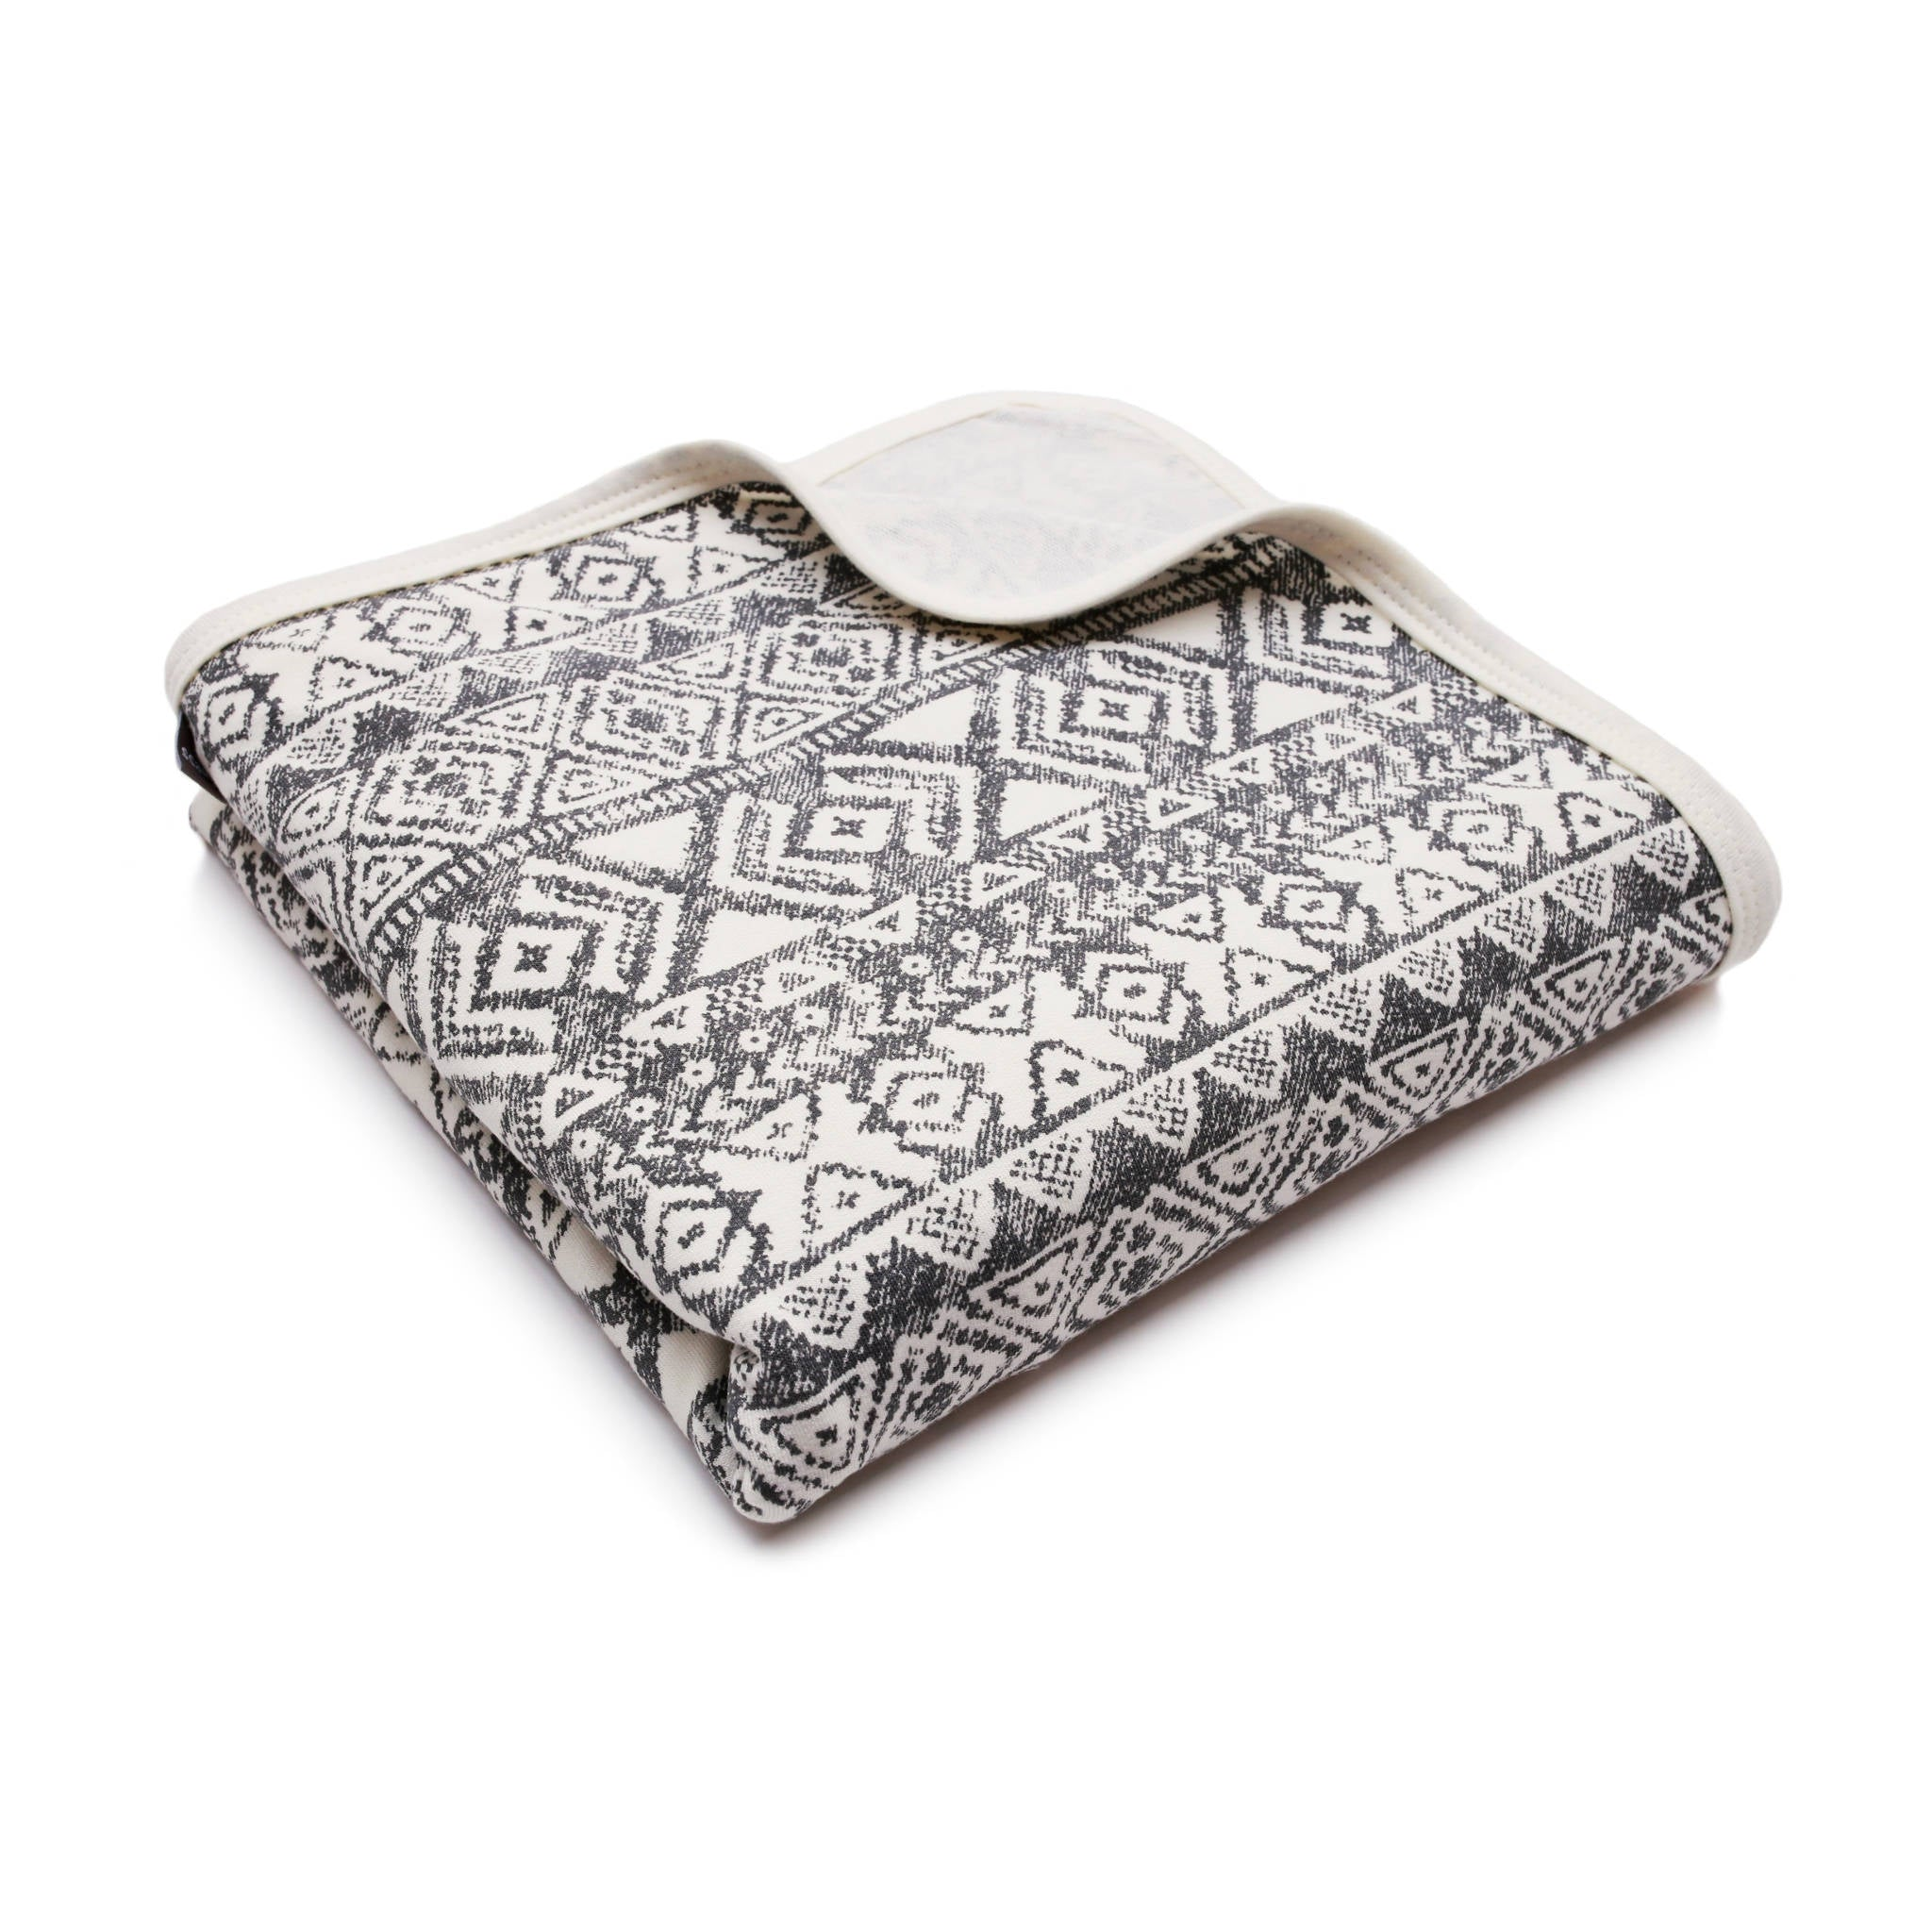 PULP - Bamboo Hooded Swaddle Blanket / Towel Aztec - Blankets - Bambinista